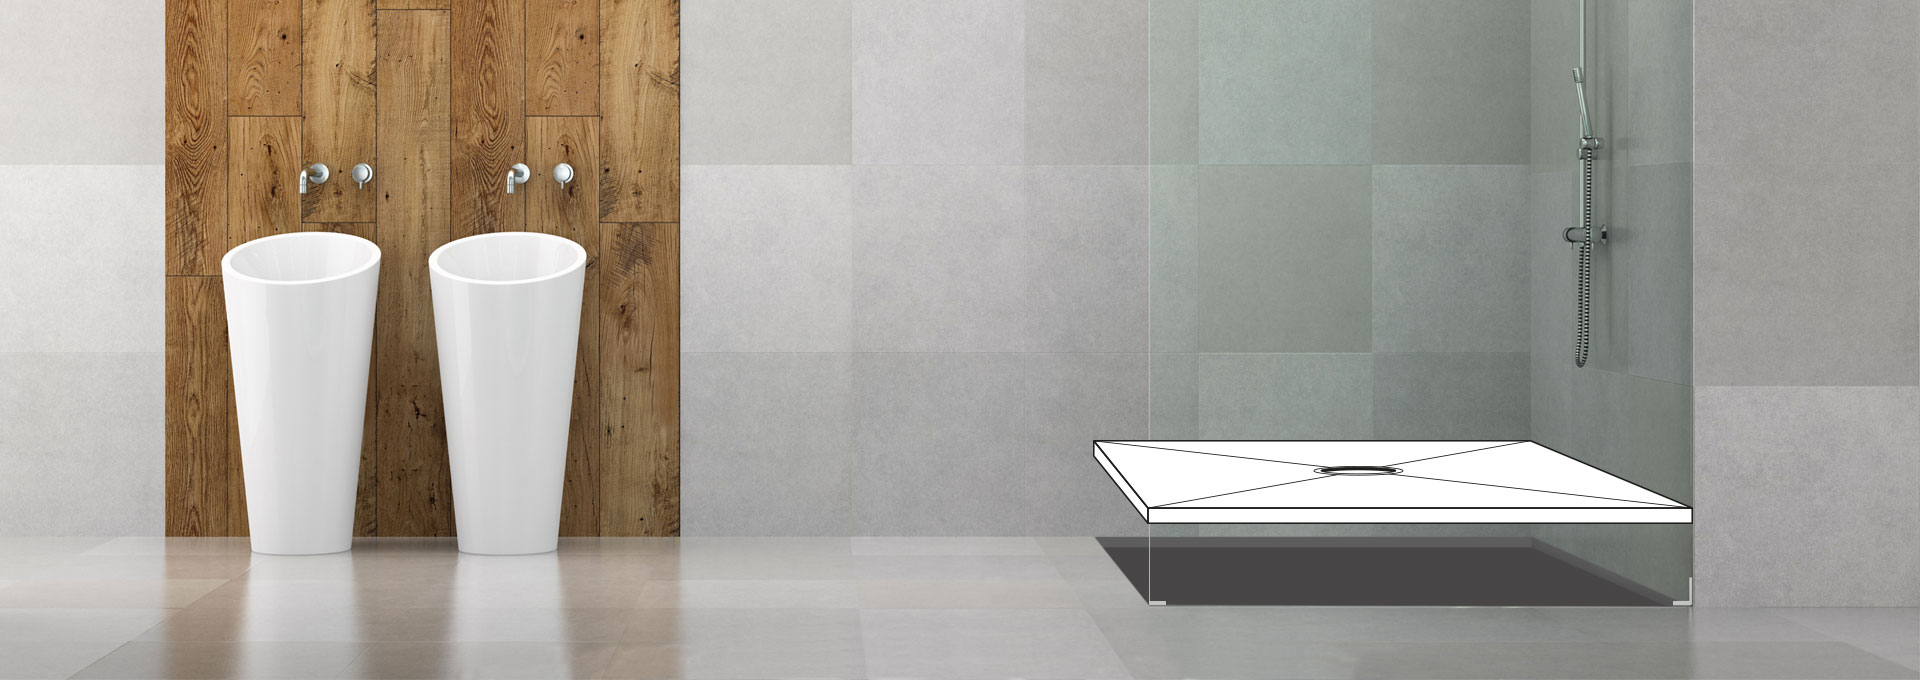 look shower seamless free tileable bath a with day base innovate mothers barrier create design